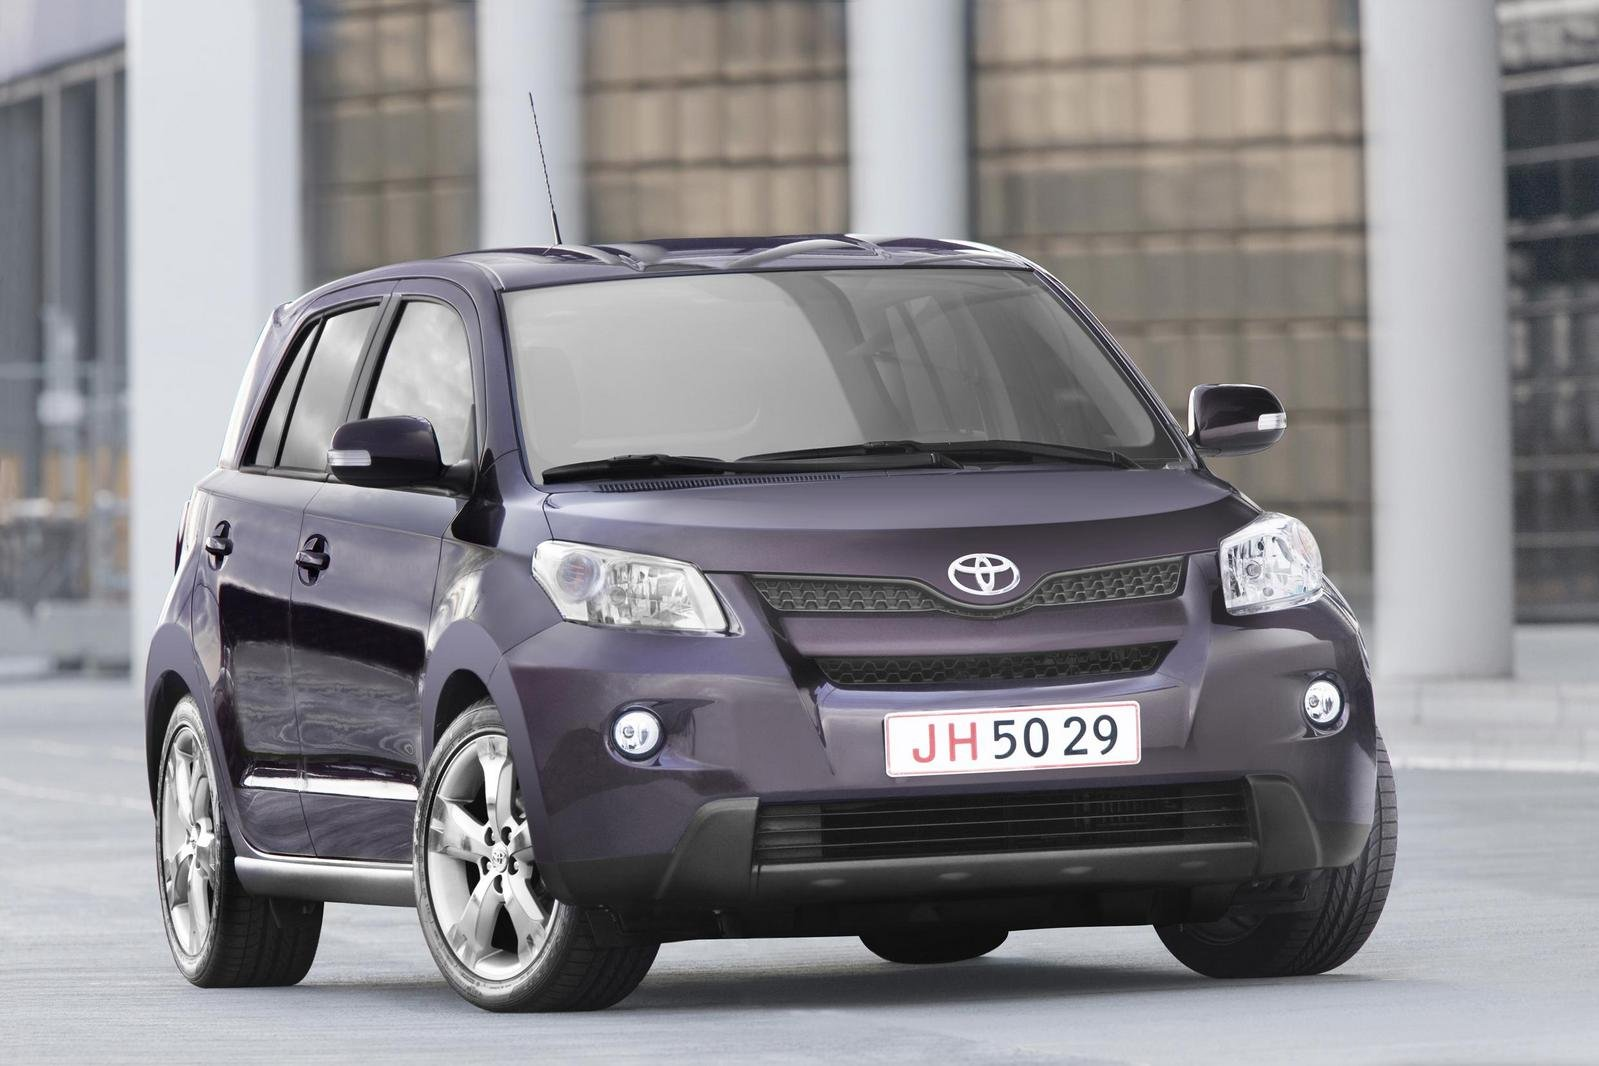 2009 toyota urban cruiser review top speed. Black Bedroom Furniture Sets. Home Design Ideas